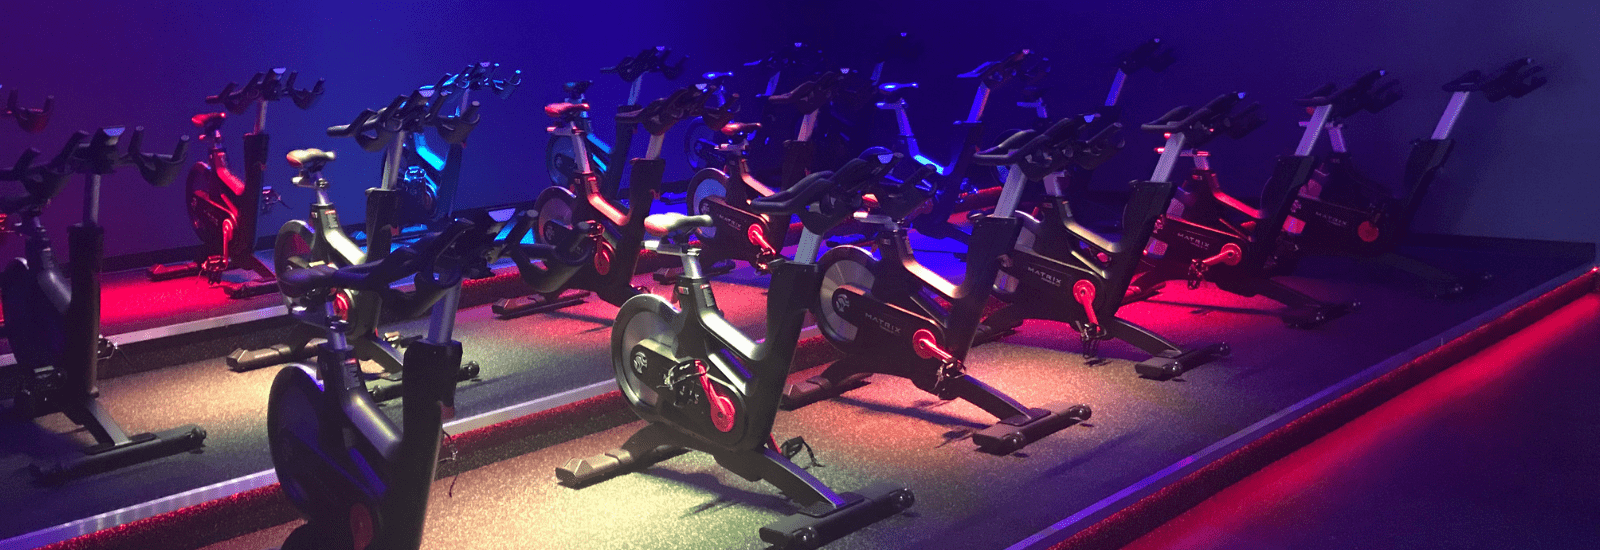 Sweat in style in our indoor cycling classes